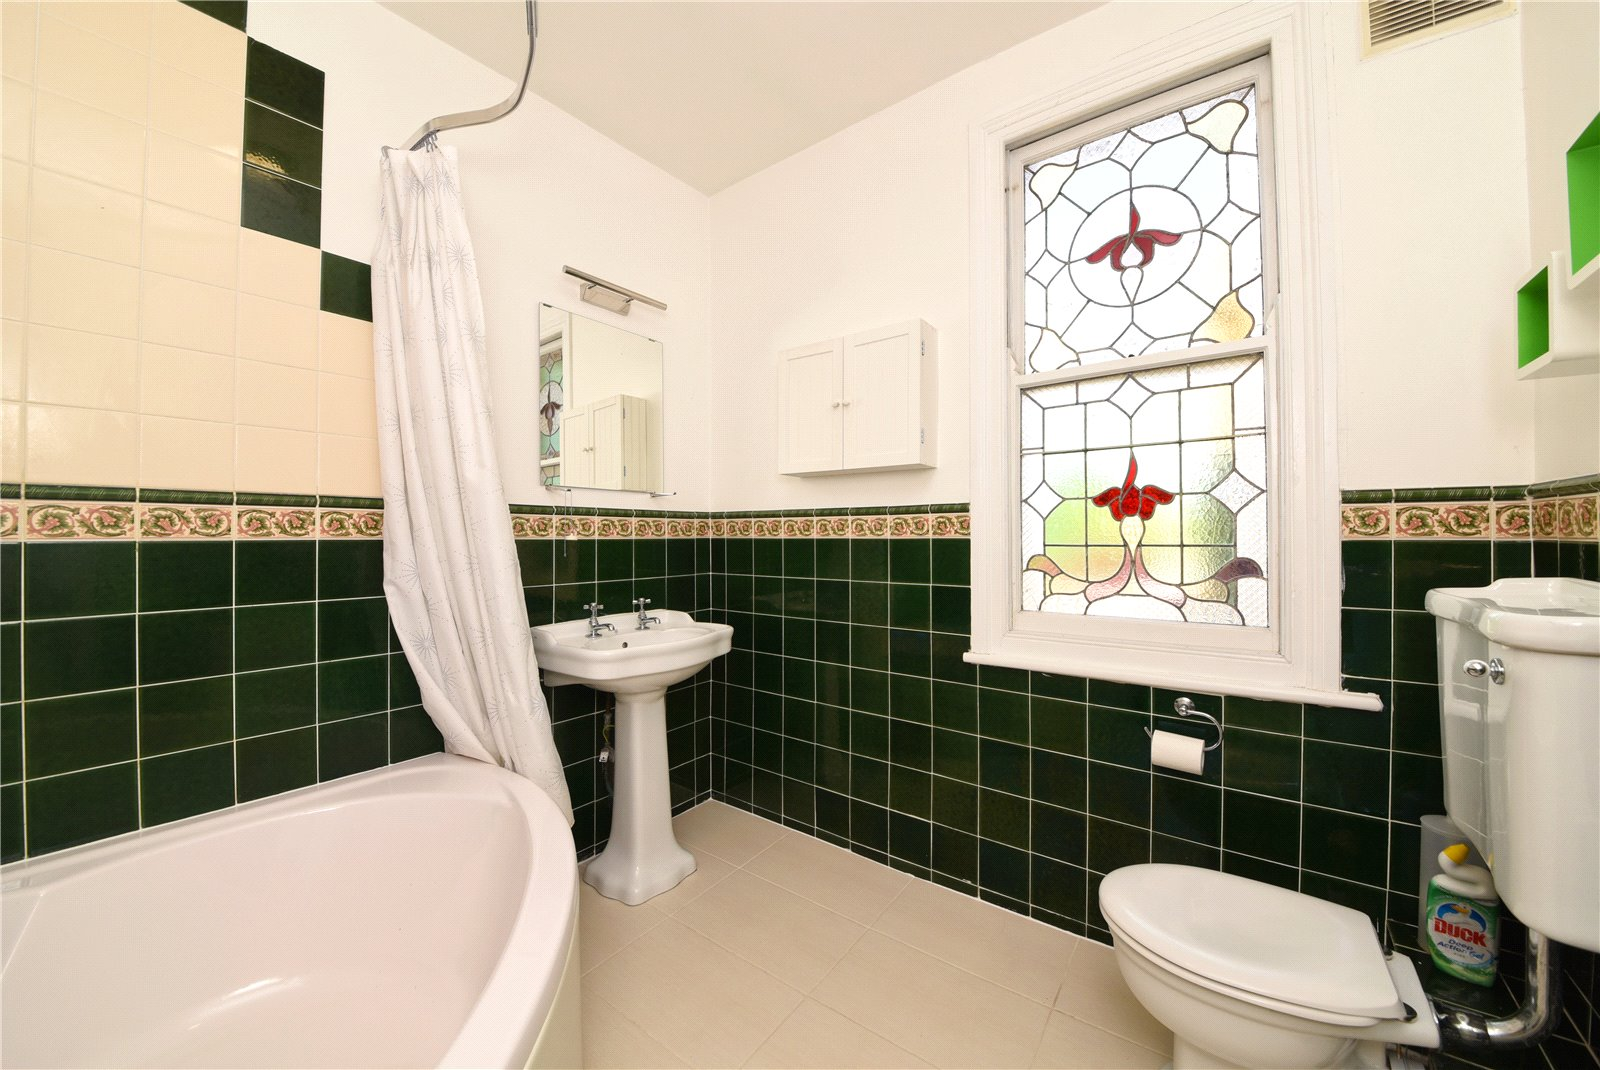 4 bed house for sale in Finchley, N3 2AR  - Property Image 10